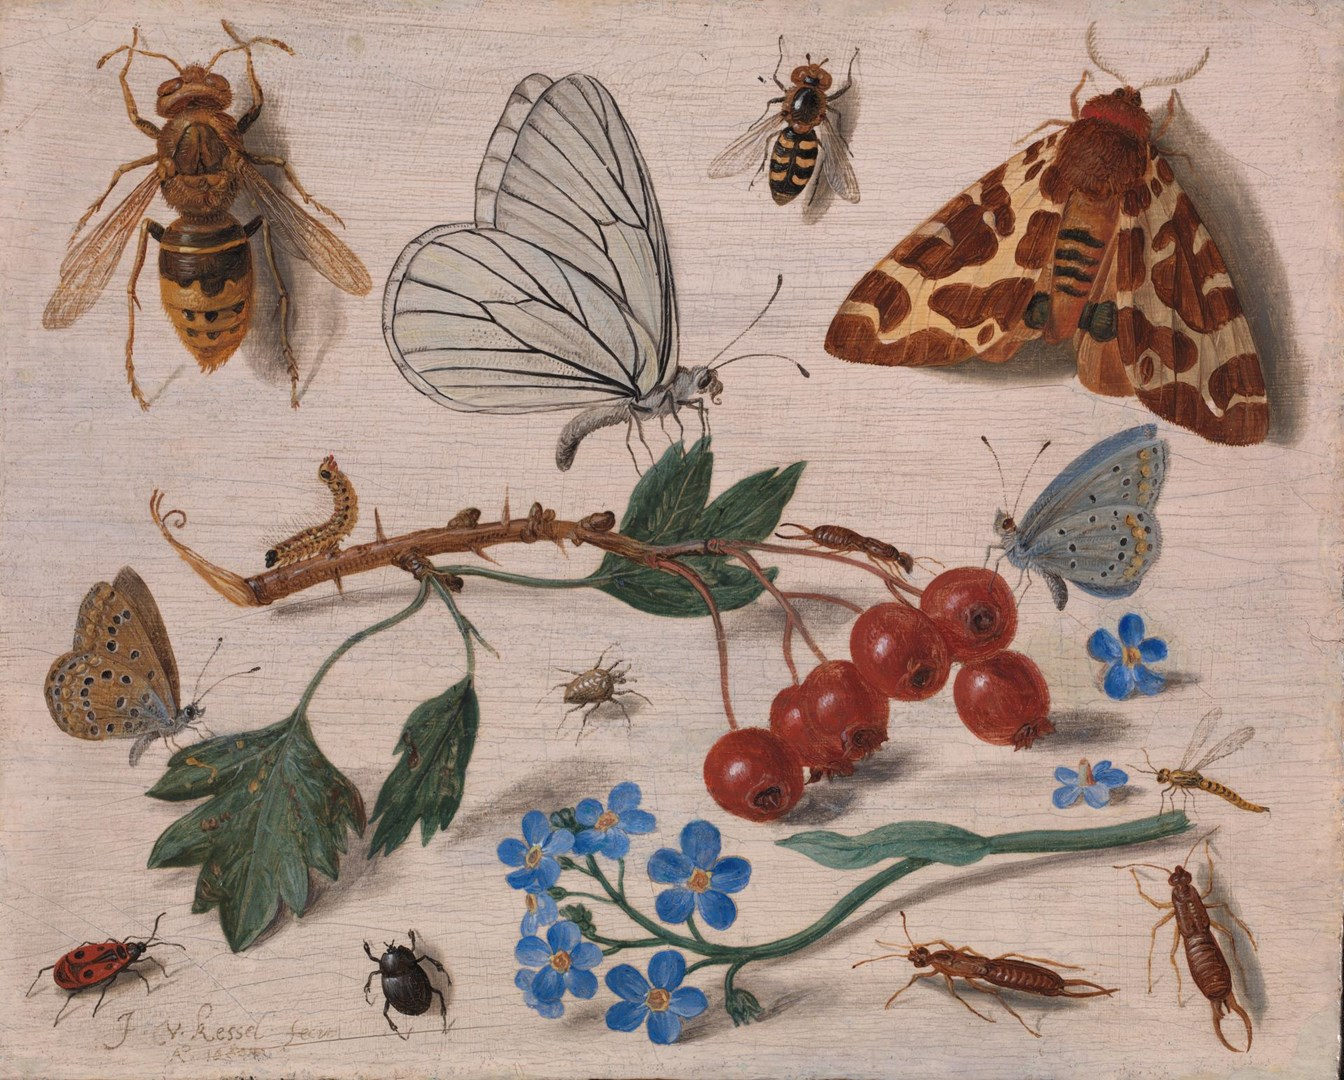 Insects with Common Hawthorn and Forget-Me-Not by Jan van Kessel the Elder